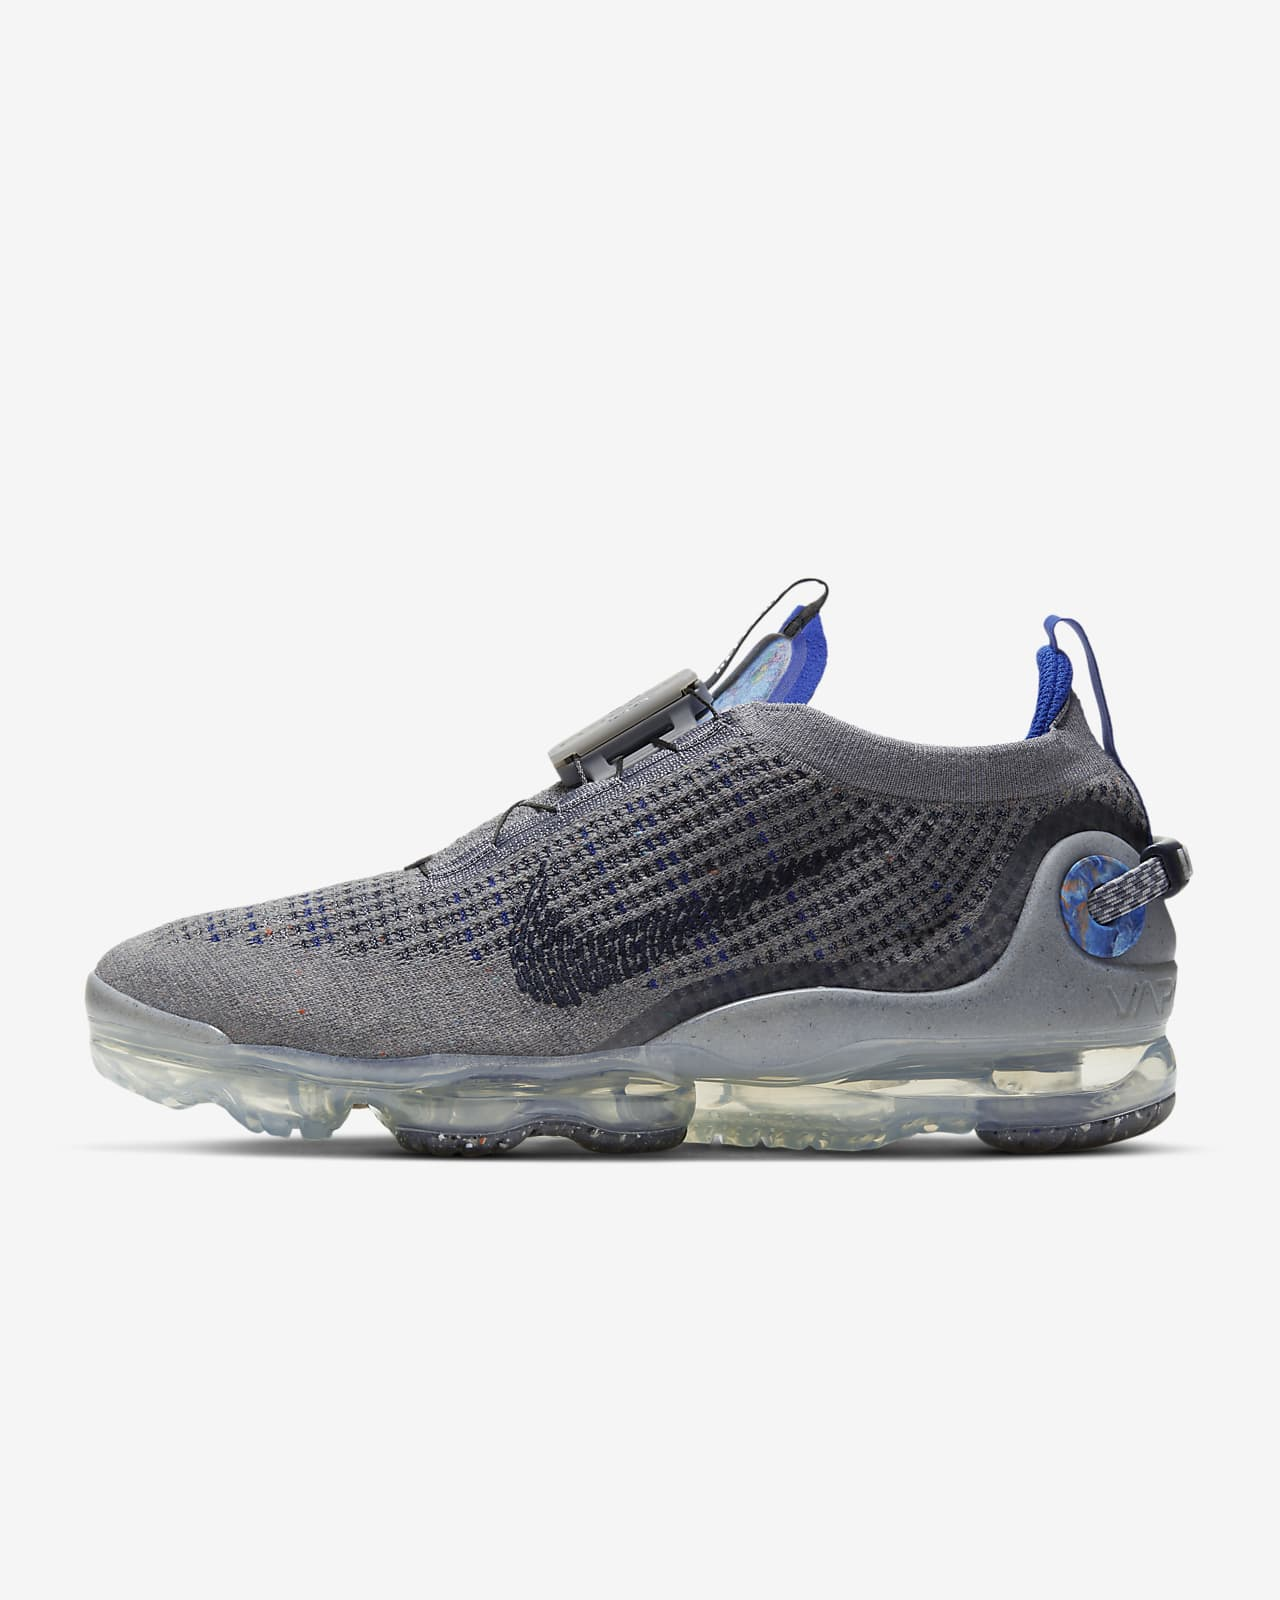 Chaussure Nike Air VaporMax 2020 FlyKnit pour Homme. Nike LU